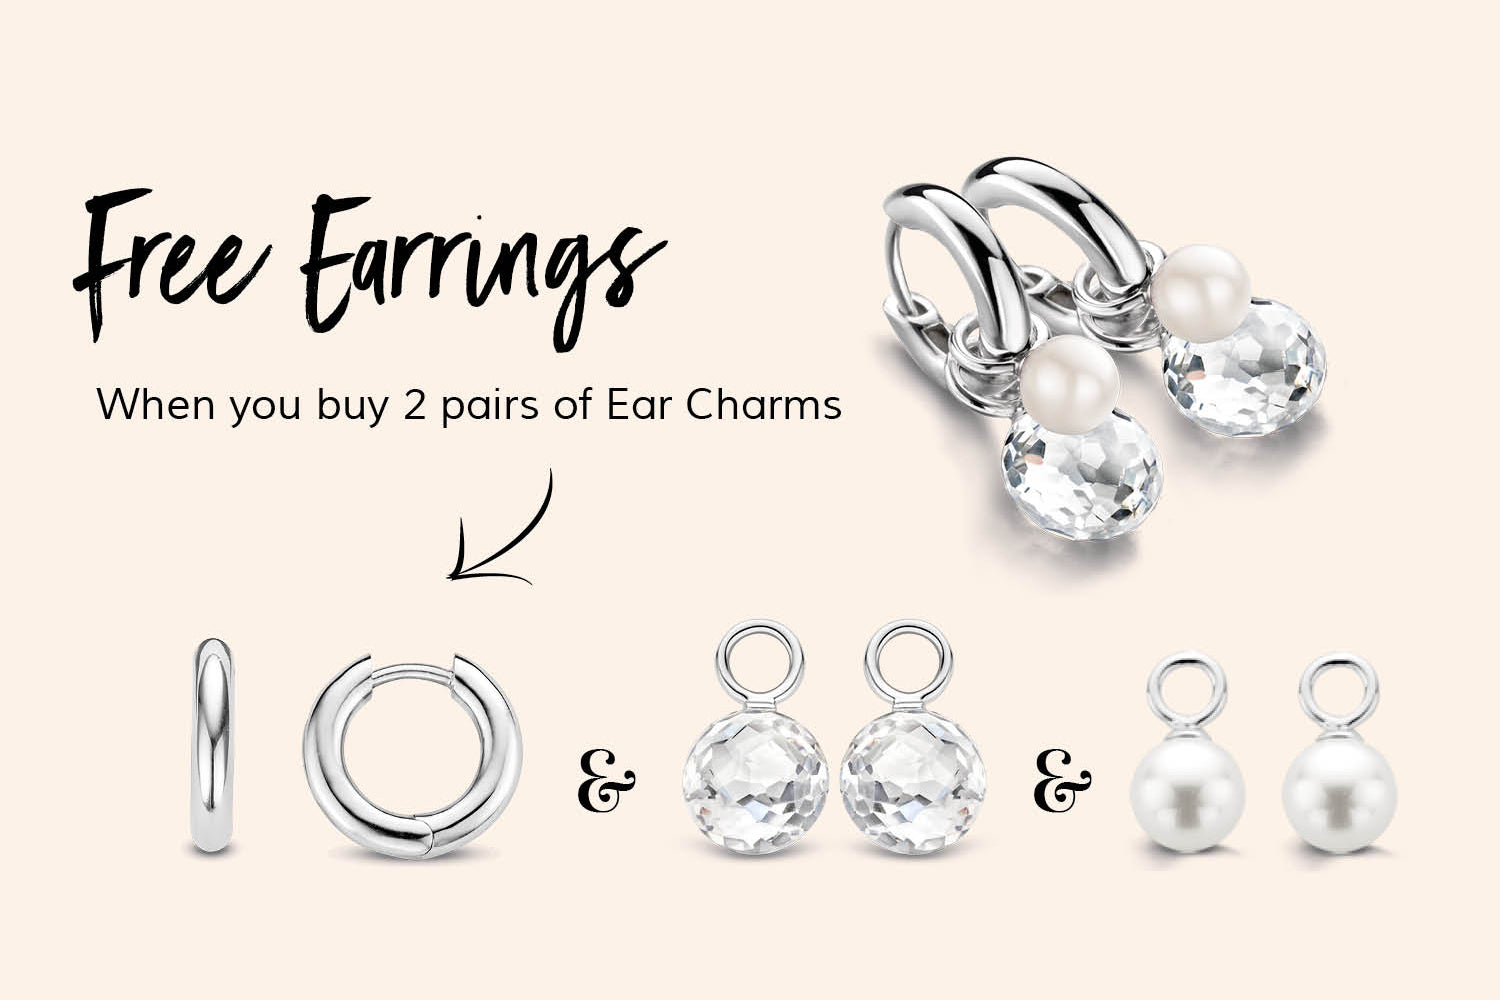 Ear Charm Promotion